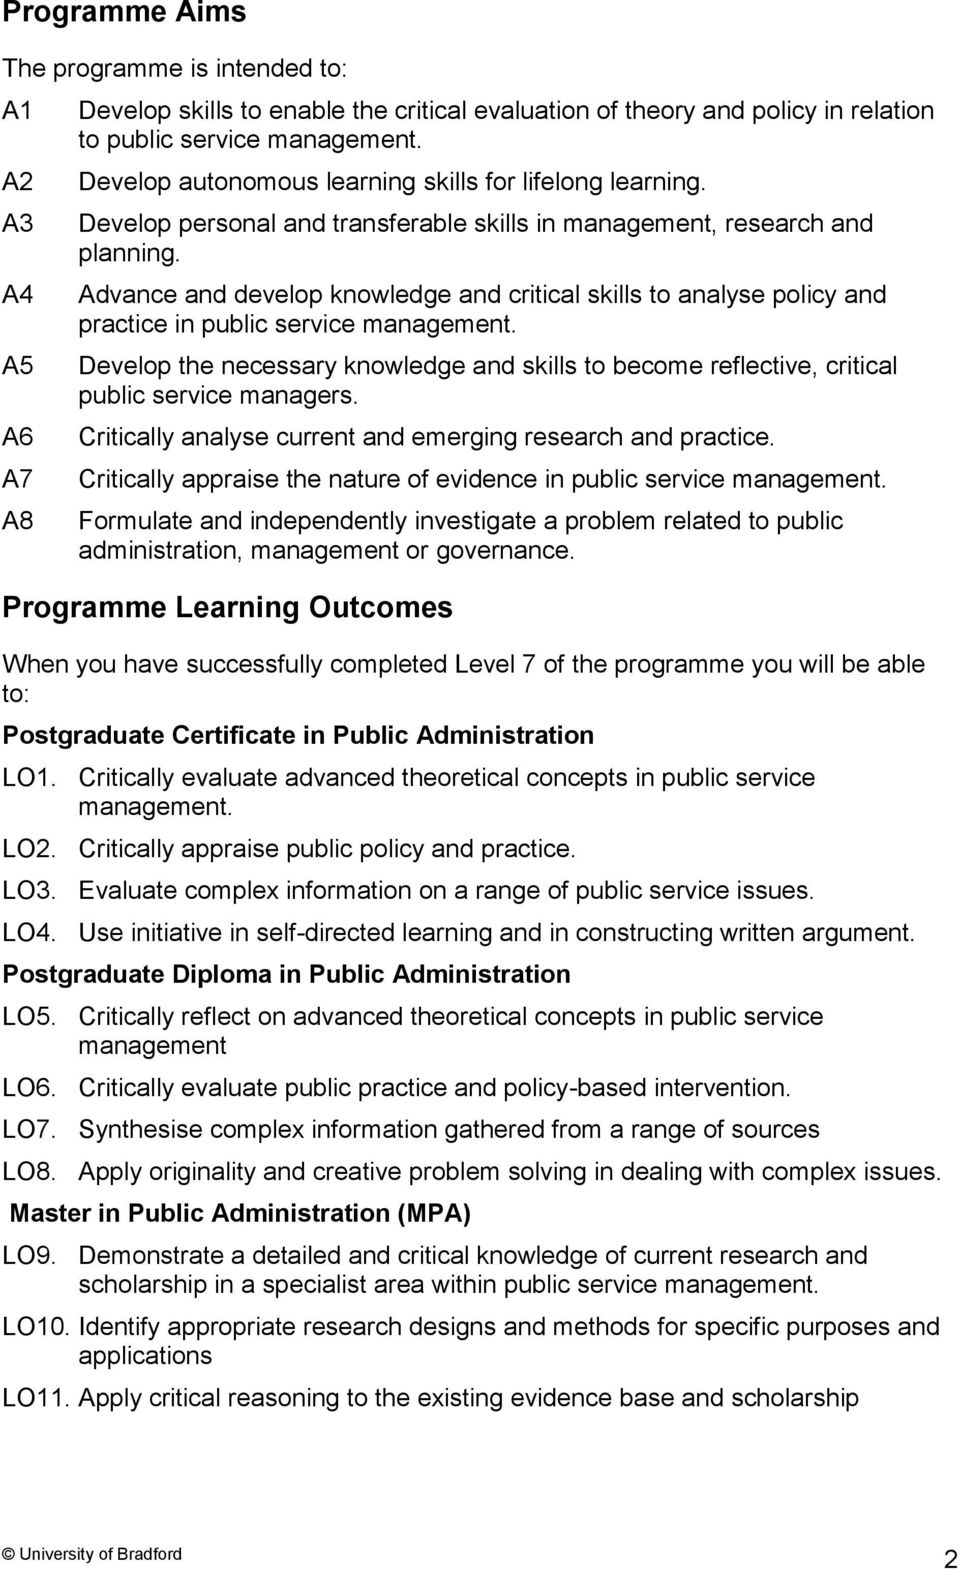 Advance and develop knowledge and critical skills to analyse policy and practice in public service management.